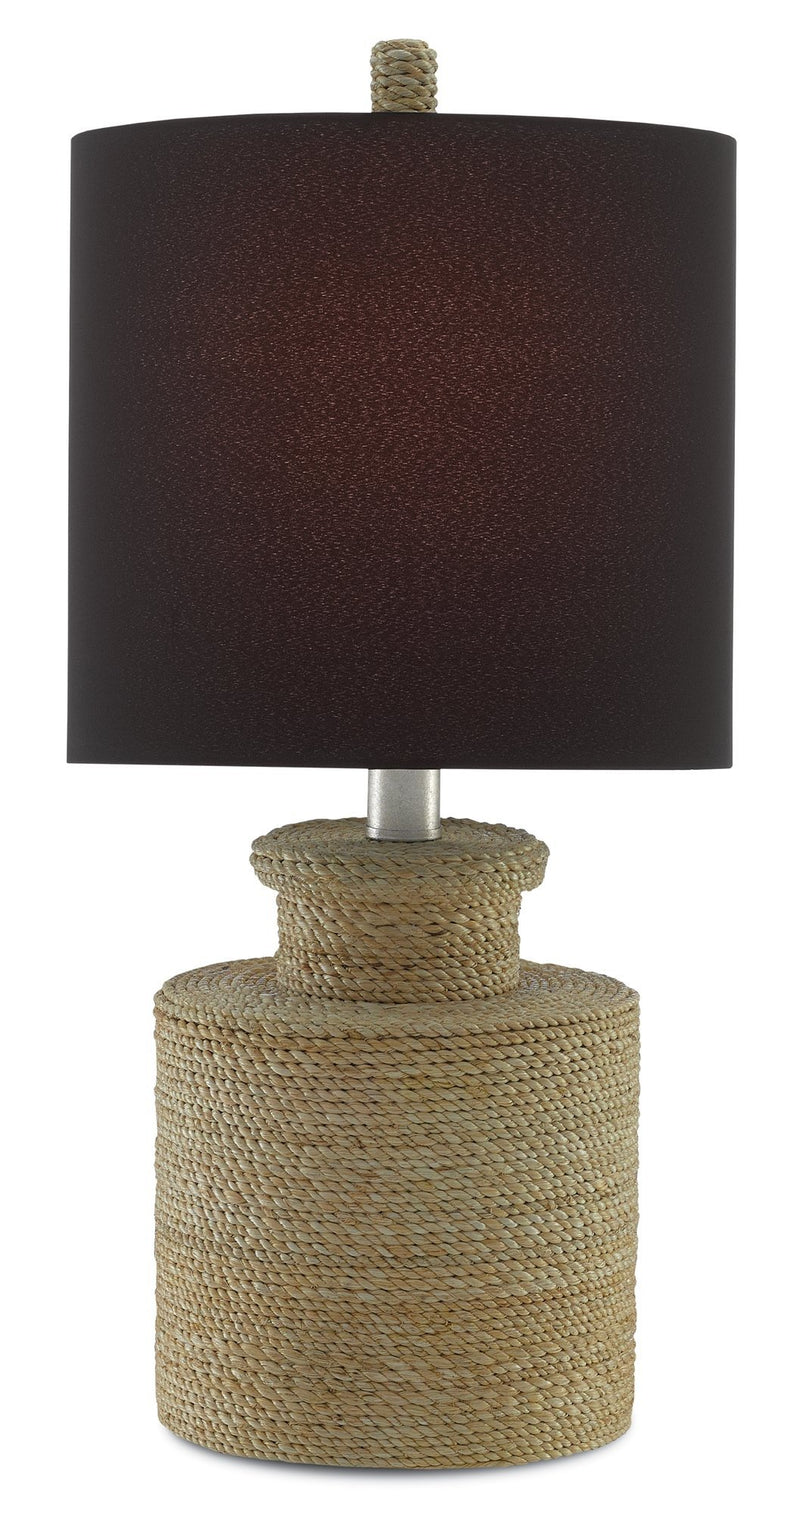 Currey & Company Table Lamp Harbor Table Lamp